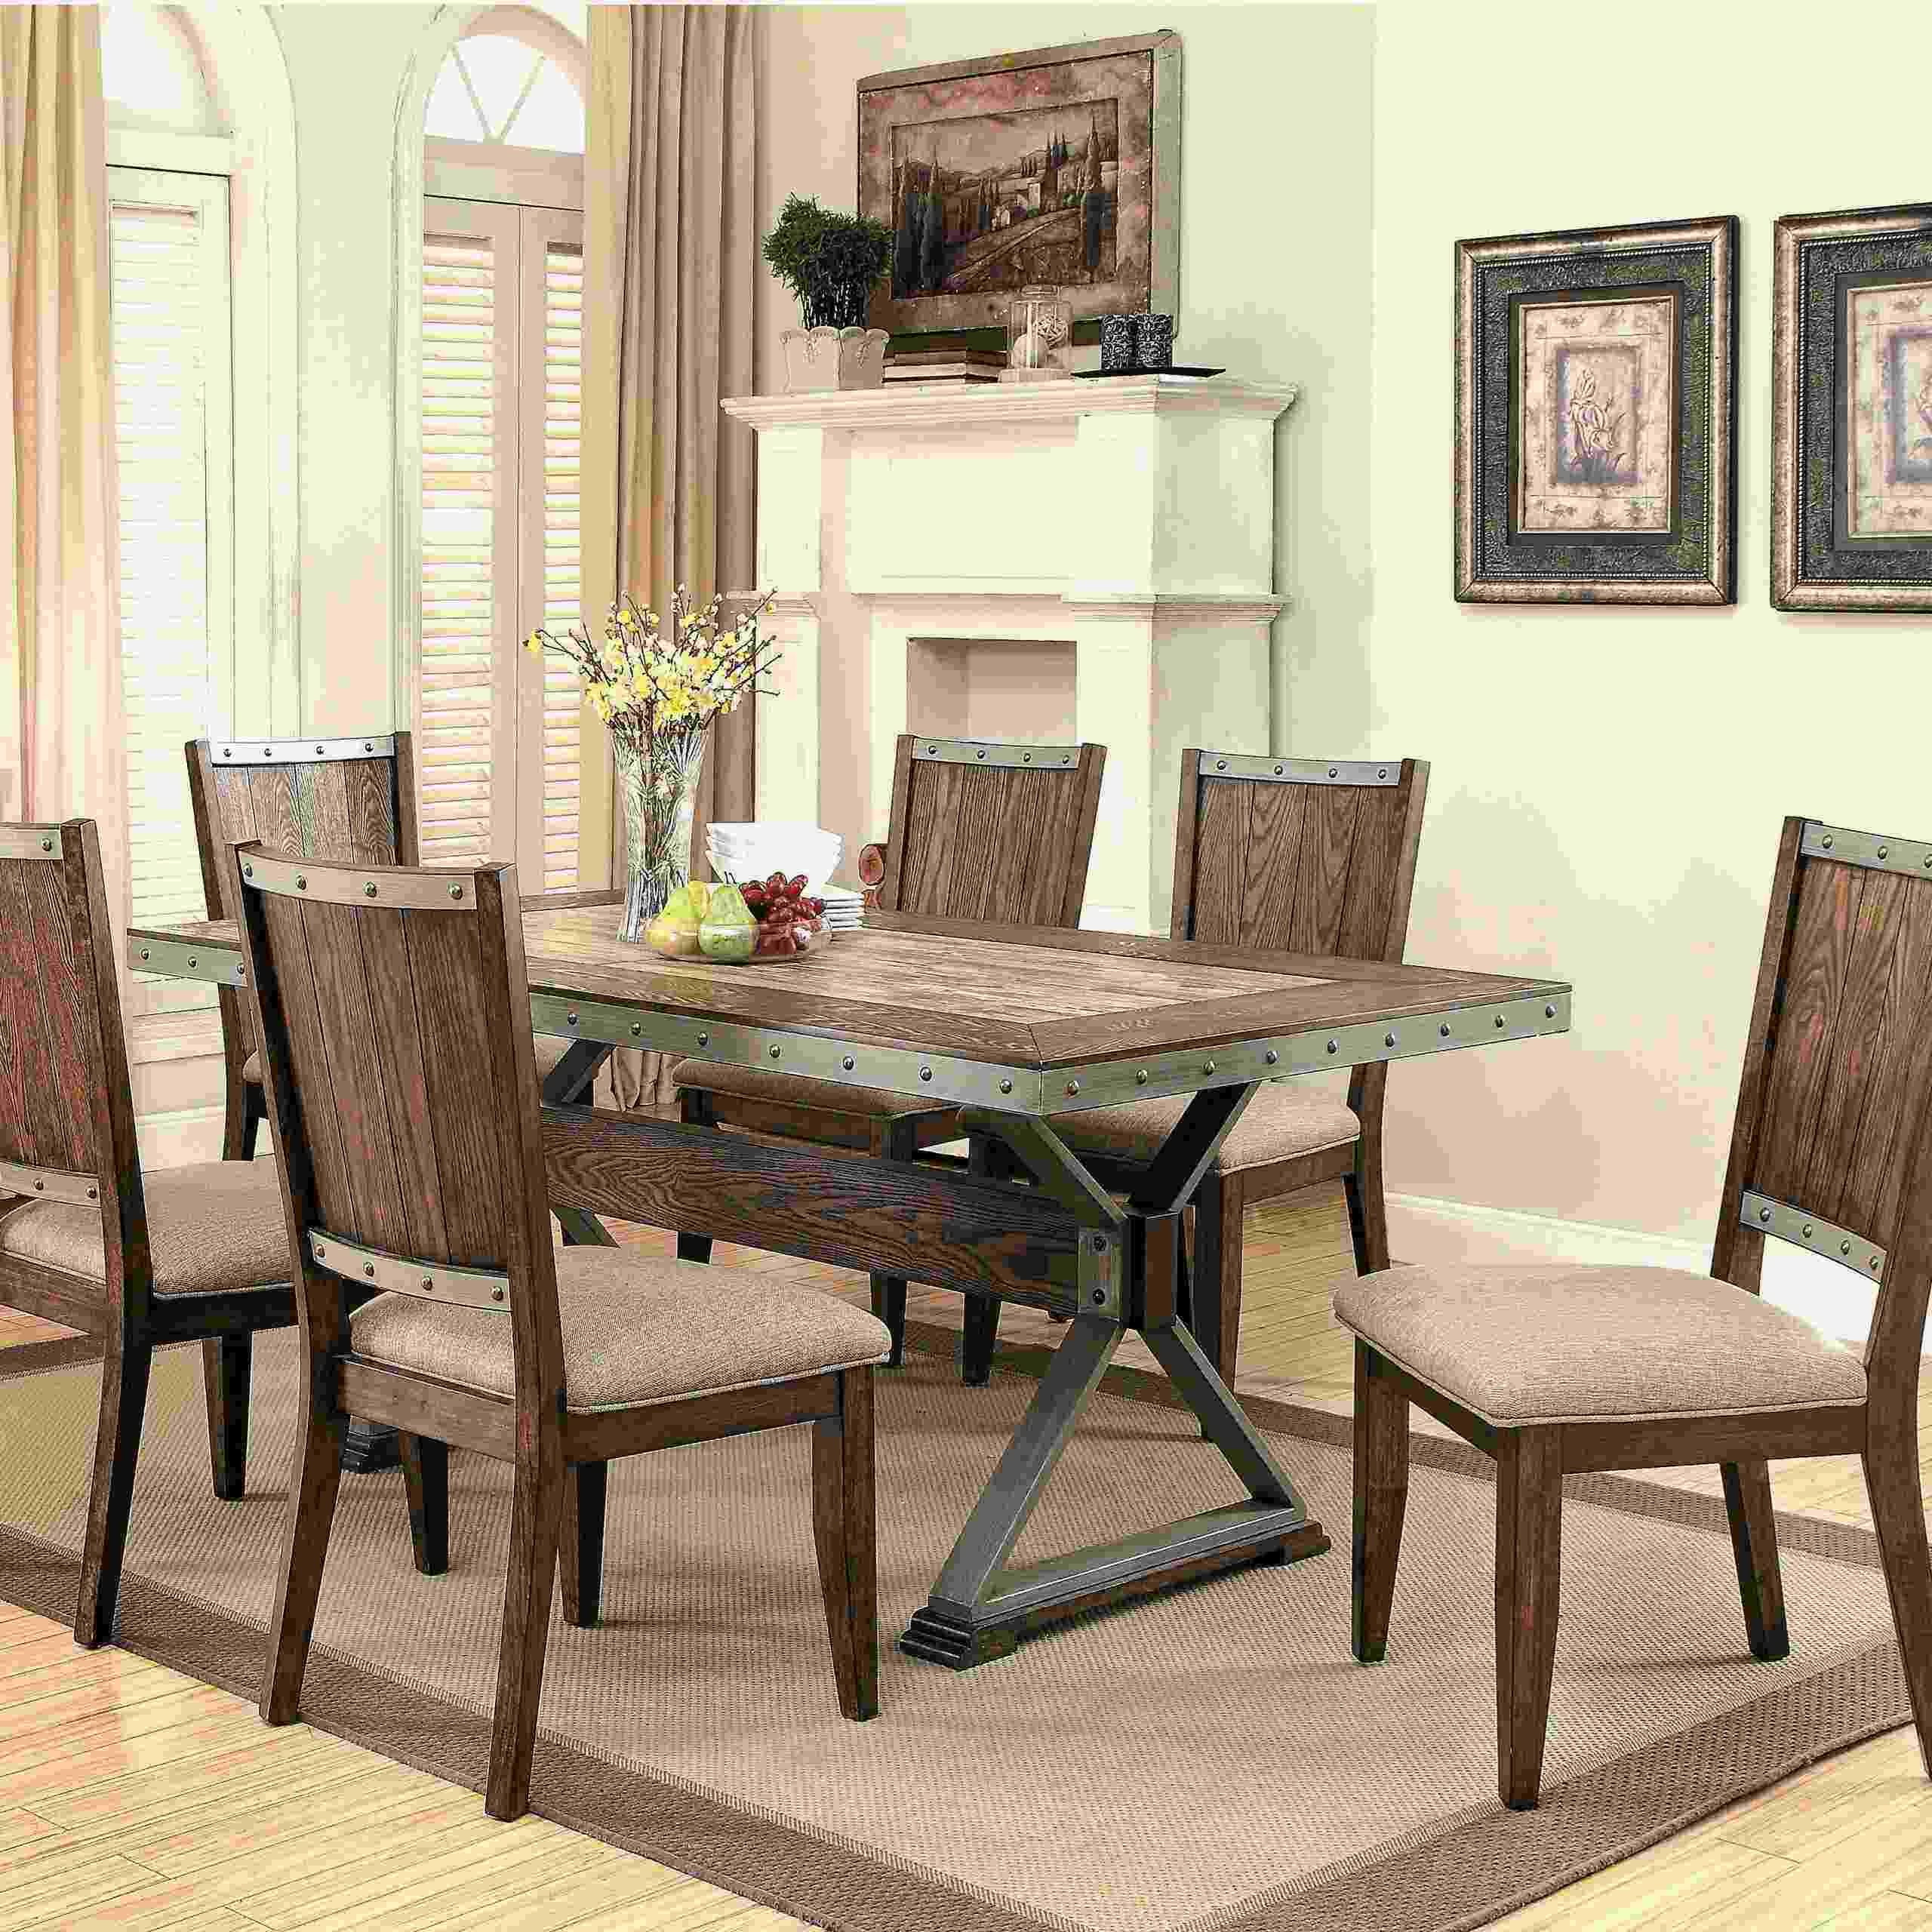 Best Place to Buy Dining Room Table   Ide ruang makan kecil, Ruang ...